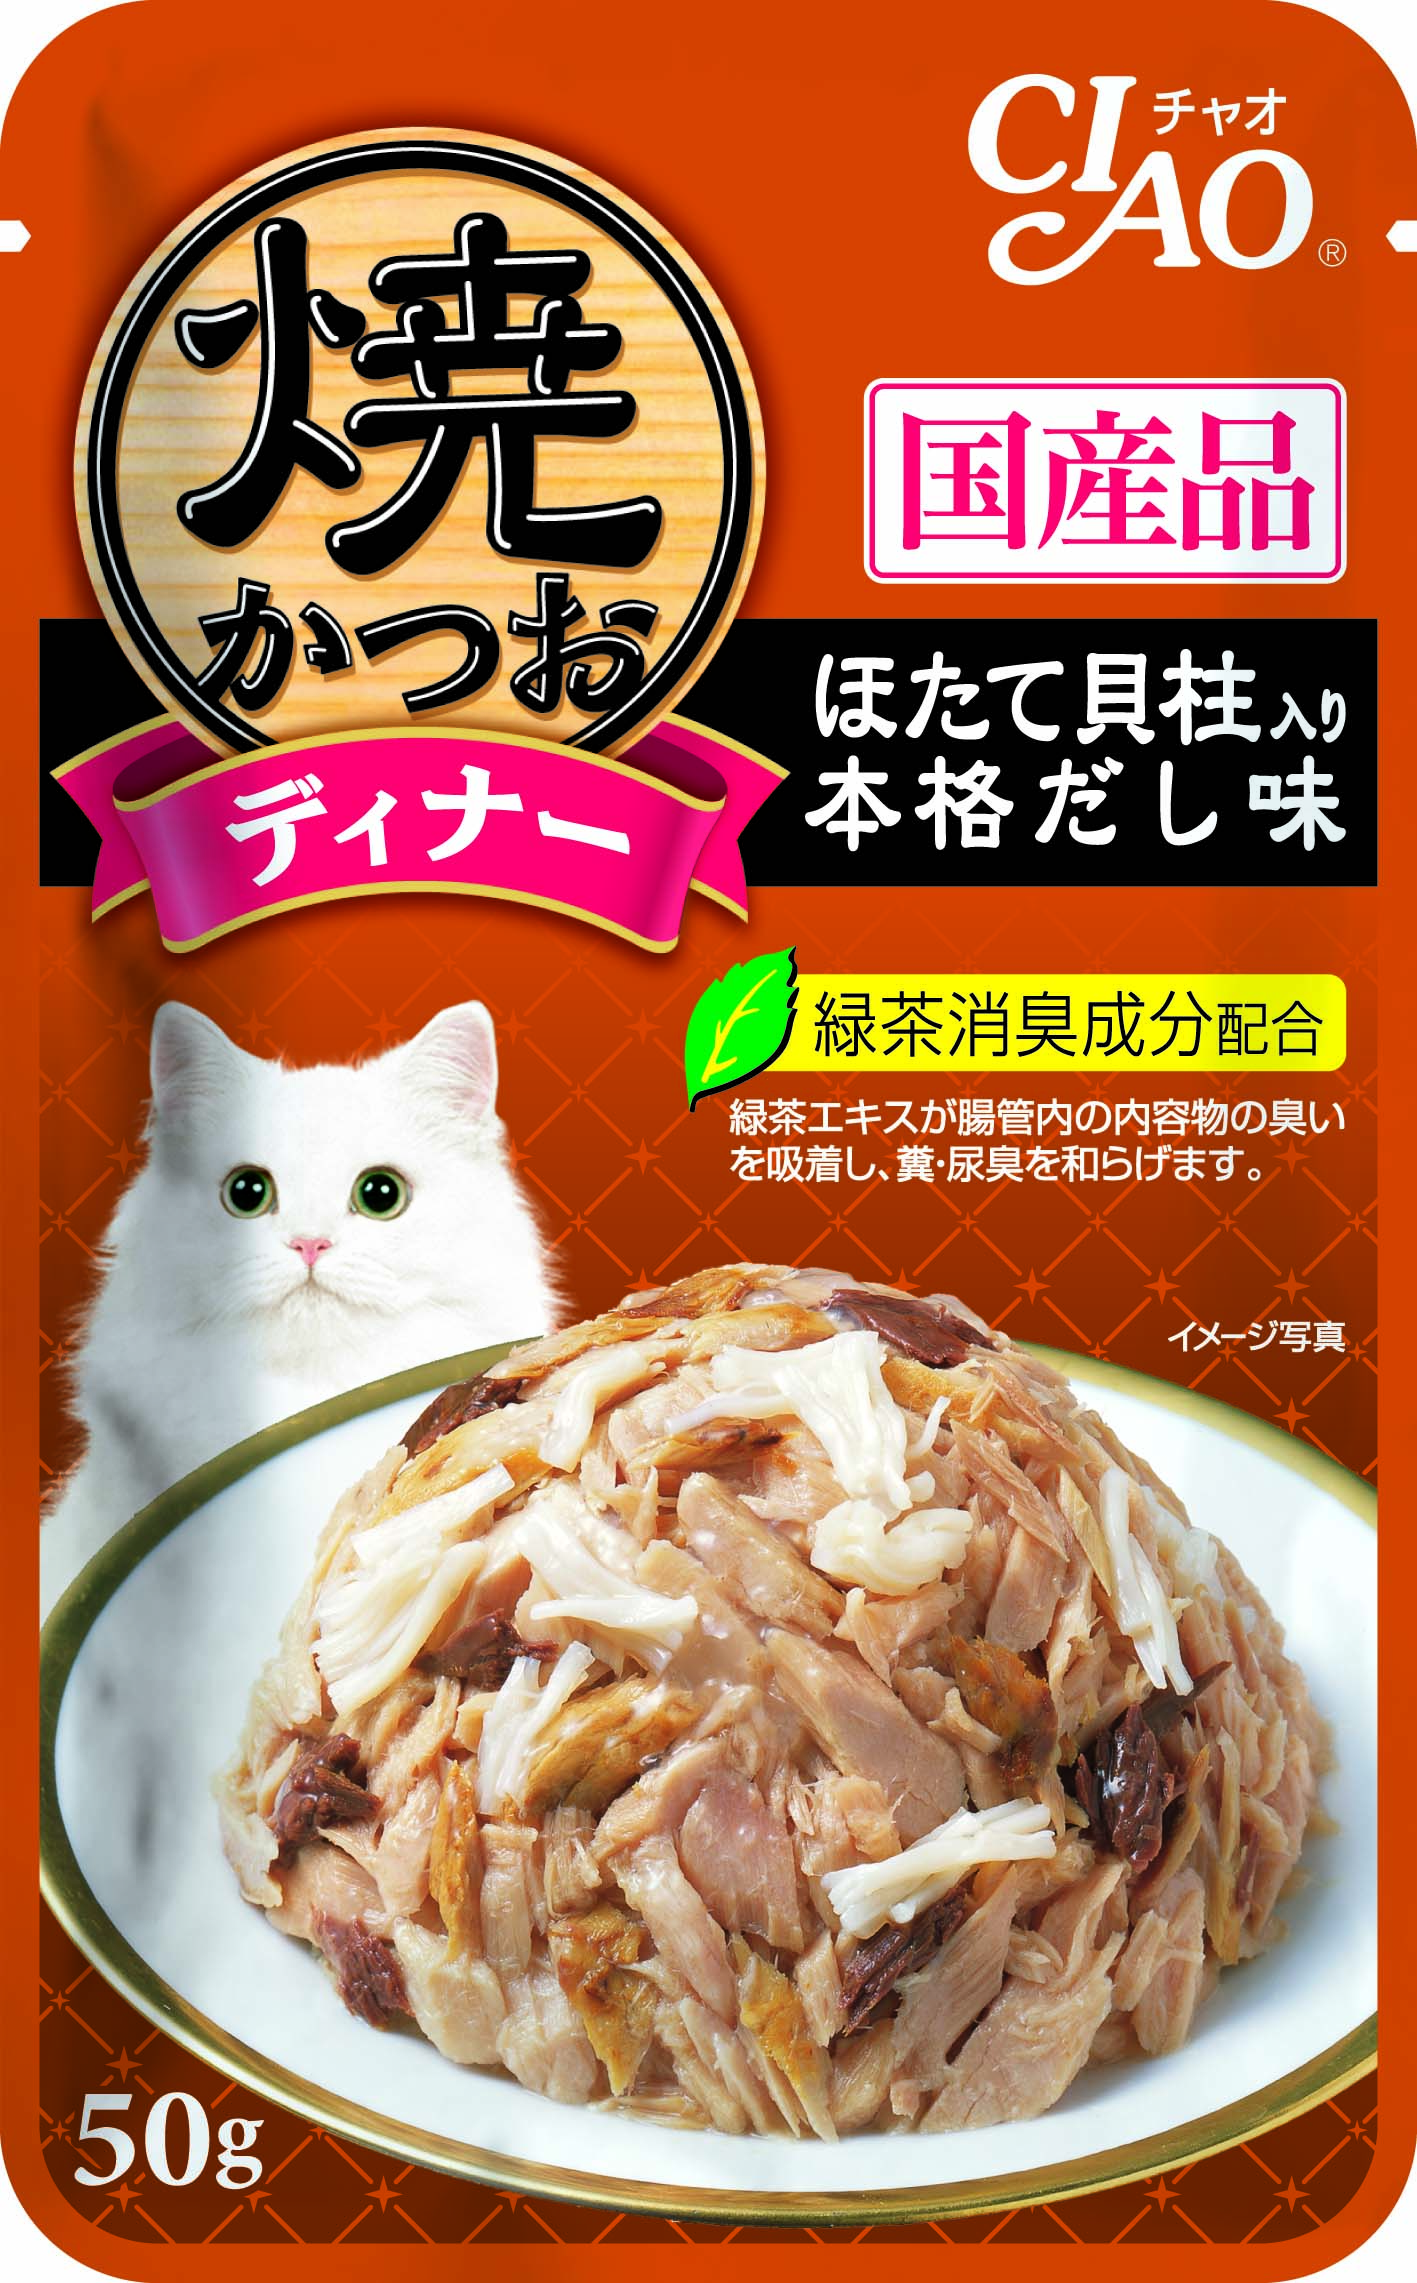 CIP236 Grilled Tuna Flakes with Scallop _ Japanese Broth in Jelly.jpg